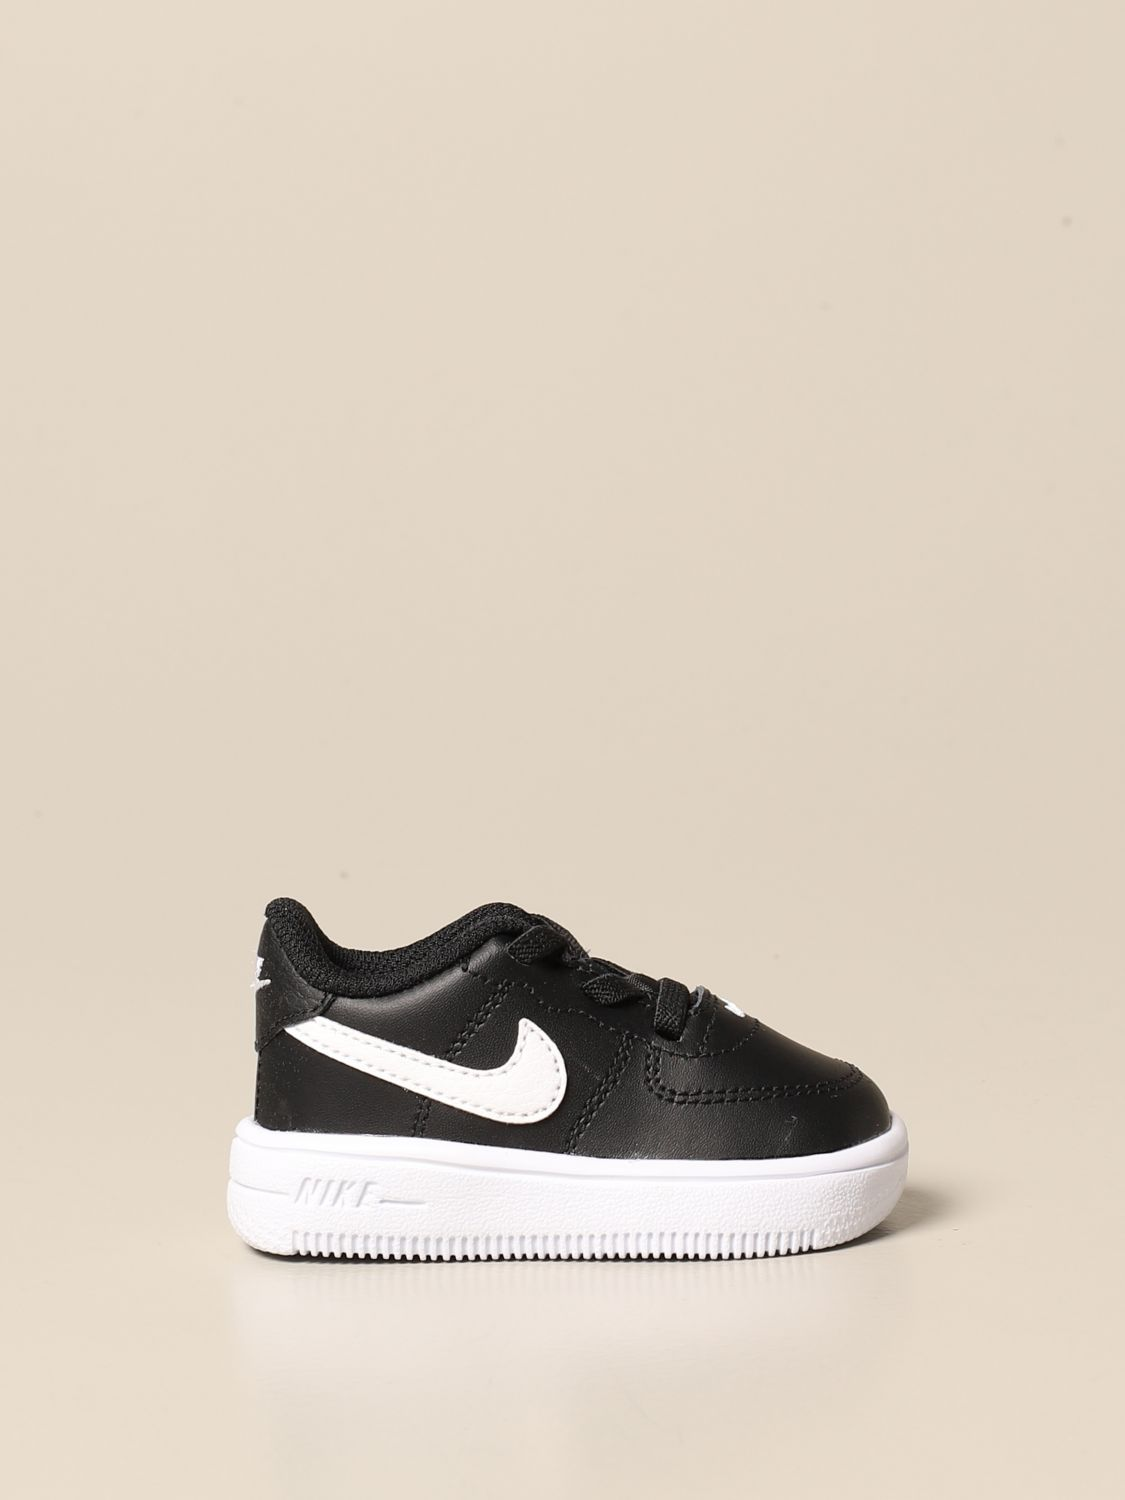 Chaussures Nike: Chaussures enfant Nike noir 1